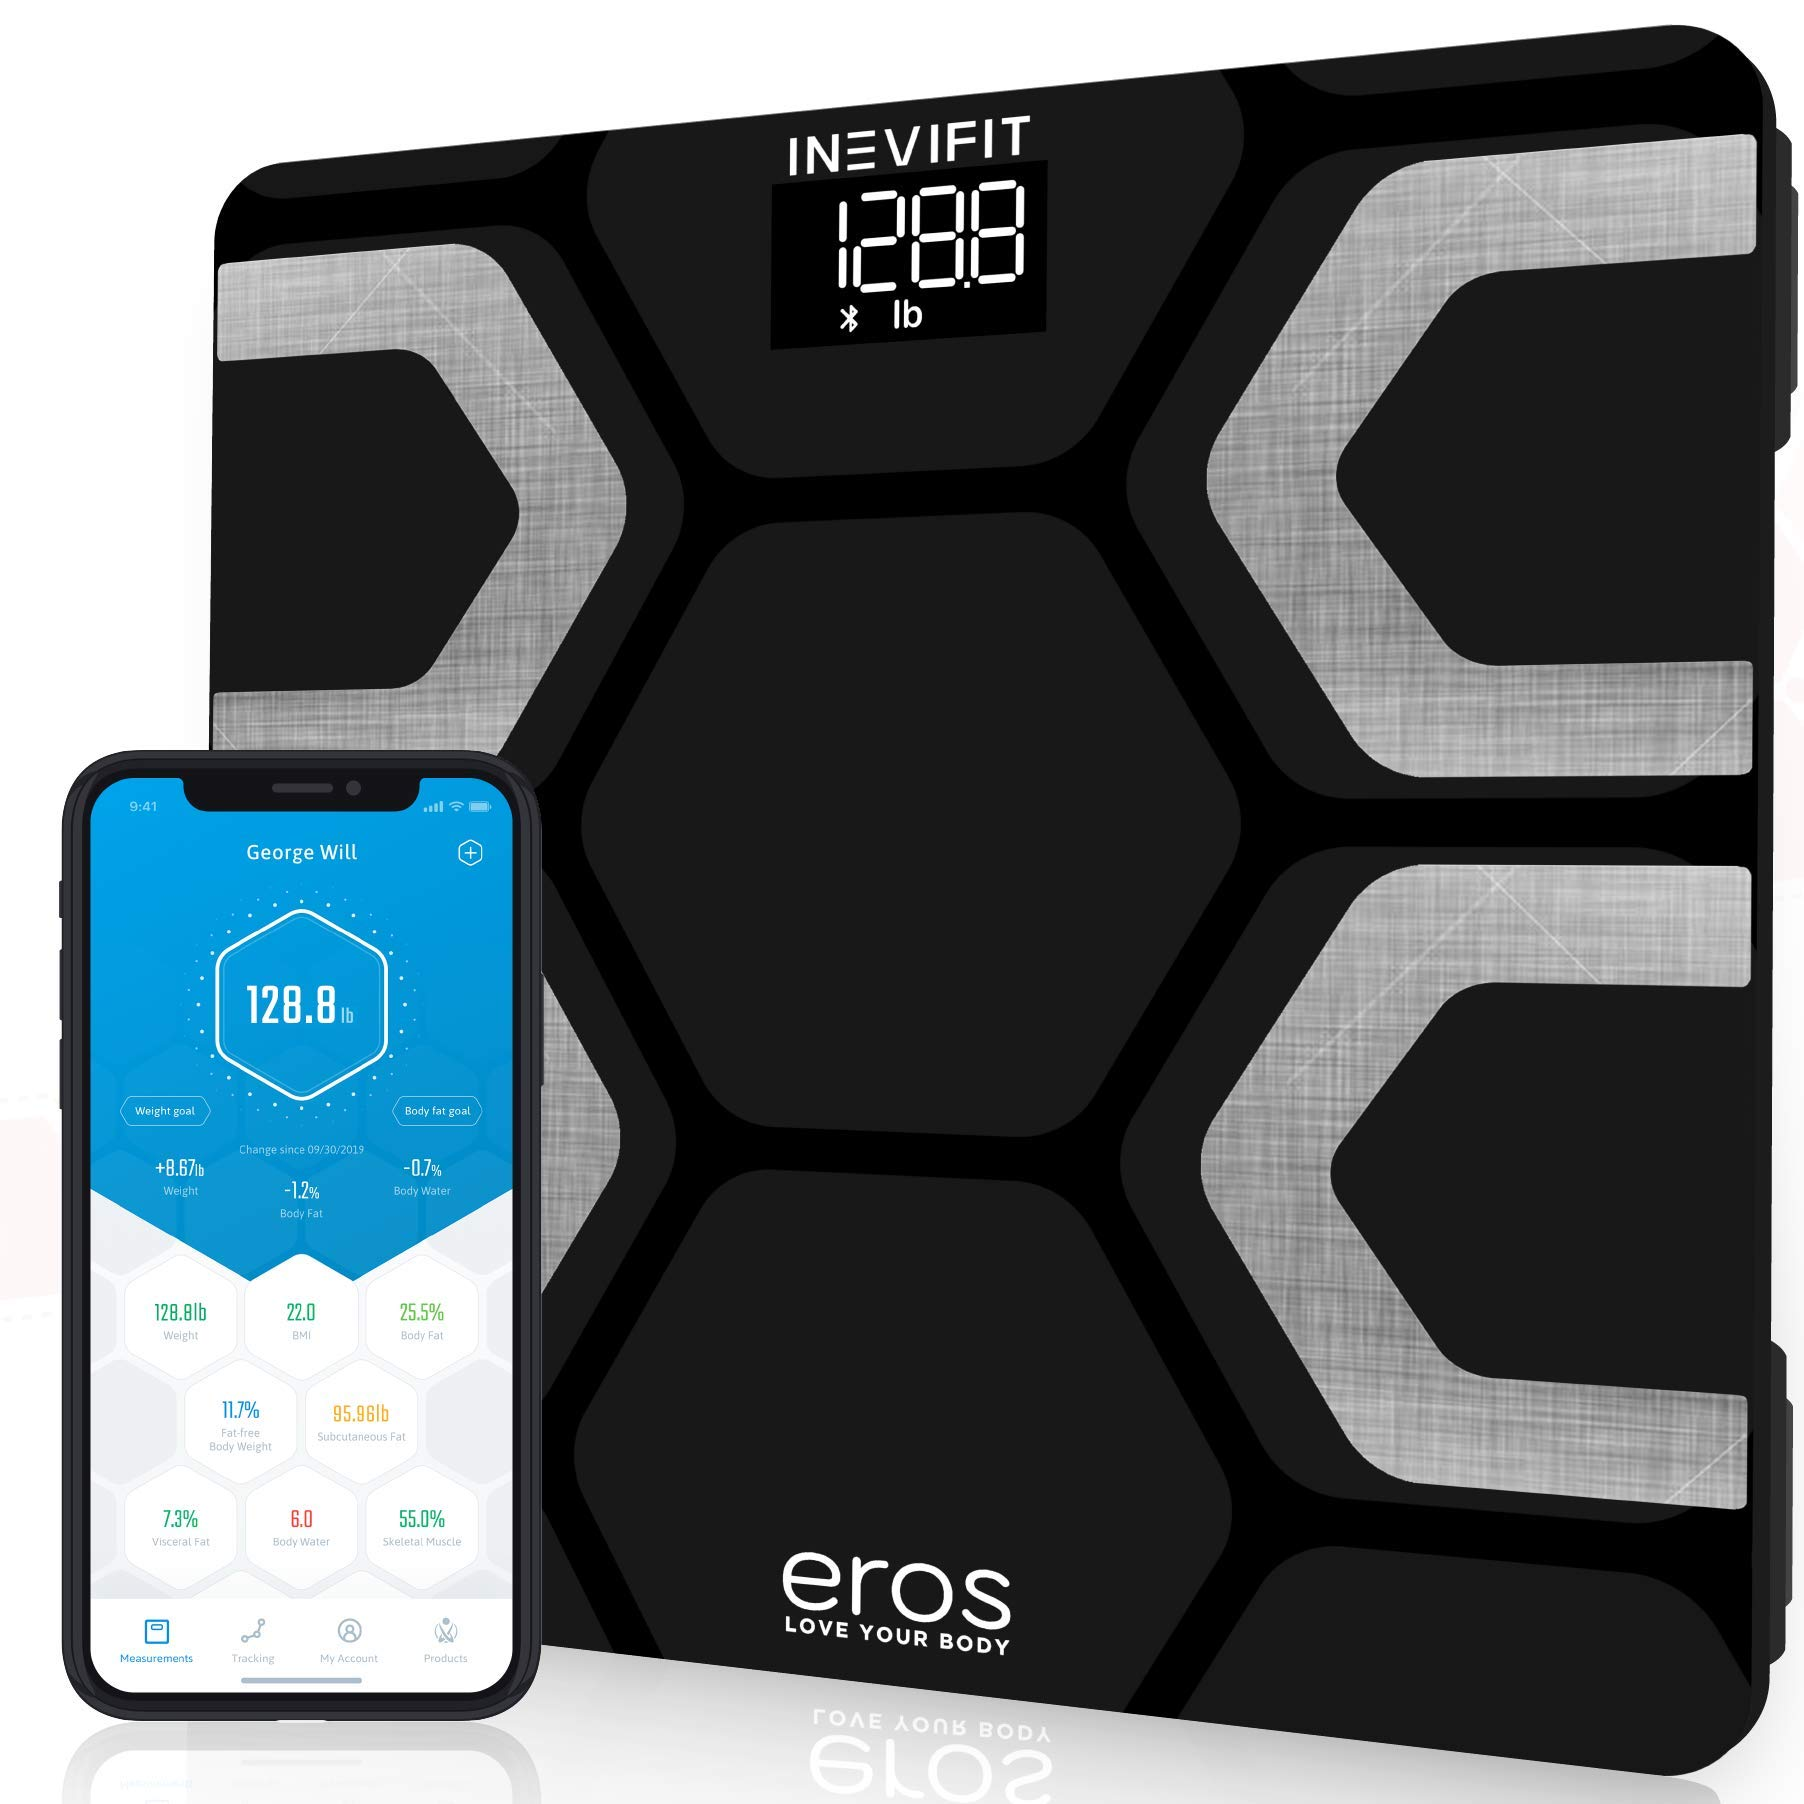 INEVIFIT EROS Bluetooth Body Fat Scale Smart BMI Highly Accurate Digital Bathroom Body Composition Analyzer with Wireless Smartphone APP 400 lbs 11.8 x 11.8 inch (Black) by INEVIFIT